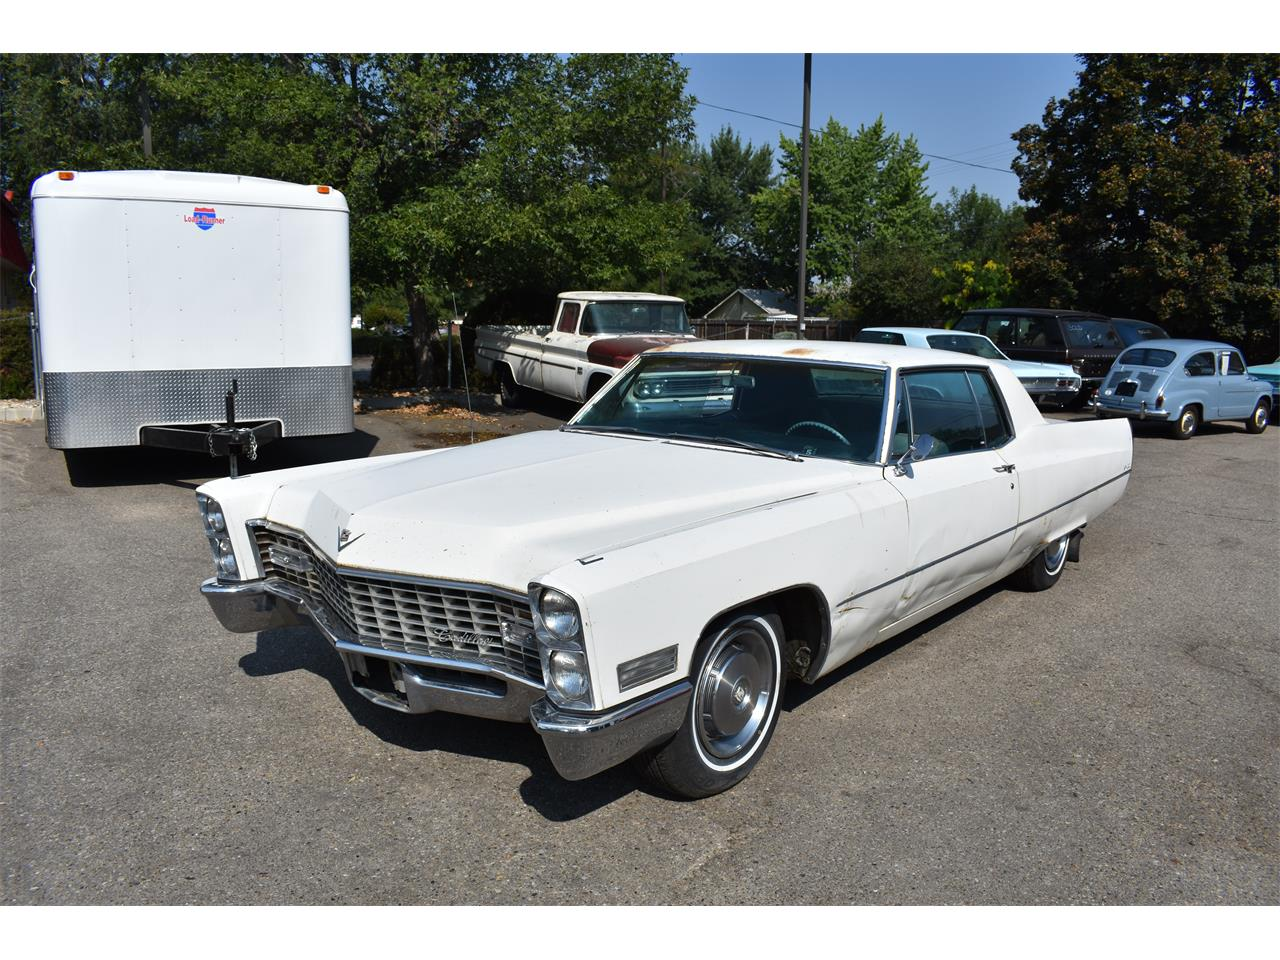 Classic Vehicles for Sale on ClassicCars.com for Under $5,000